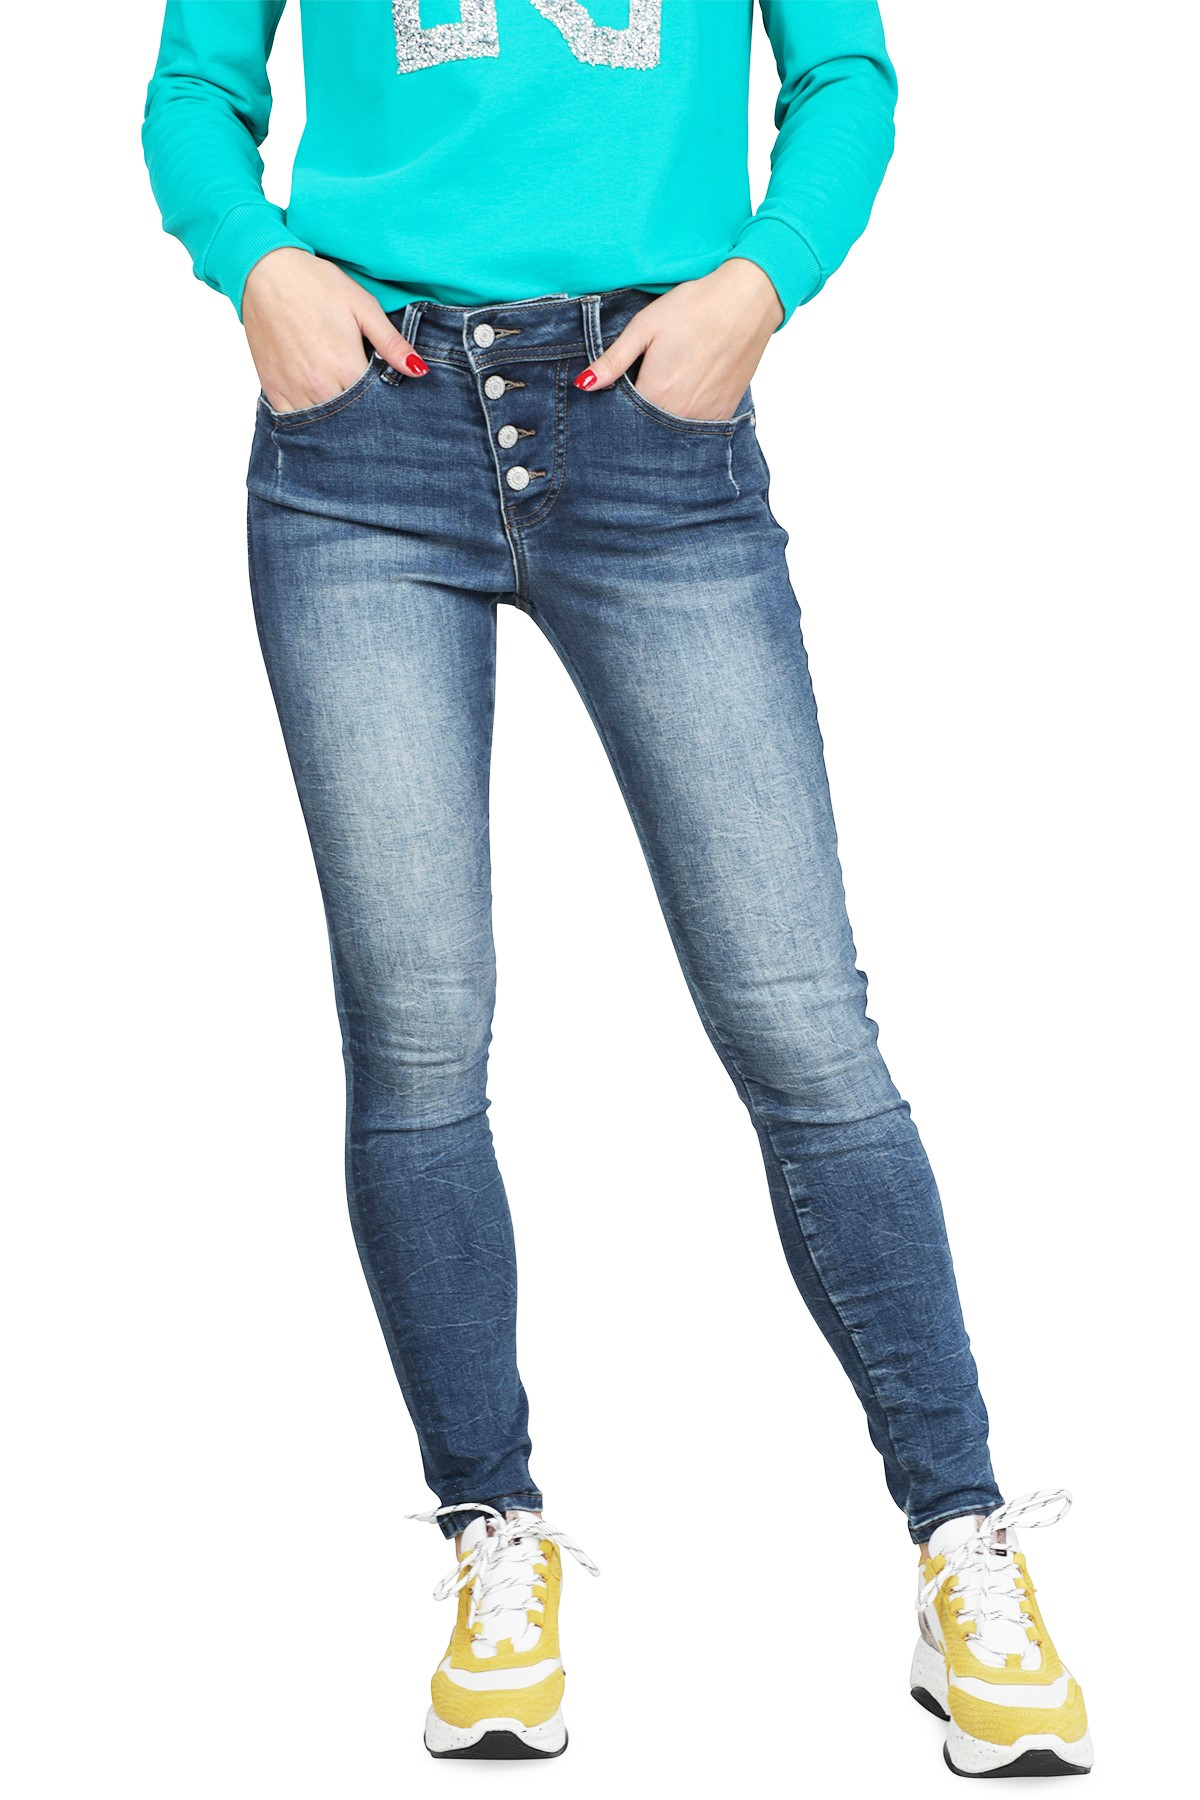 Red Button Broek Blauw Lola - sparkcle